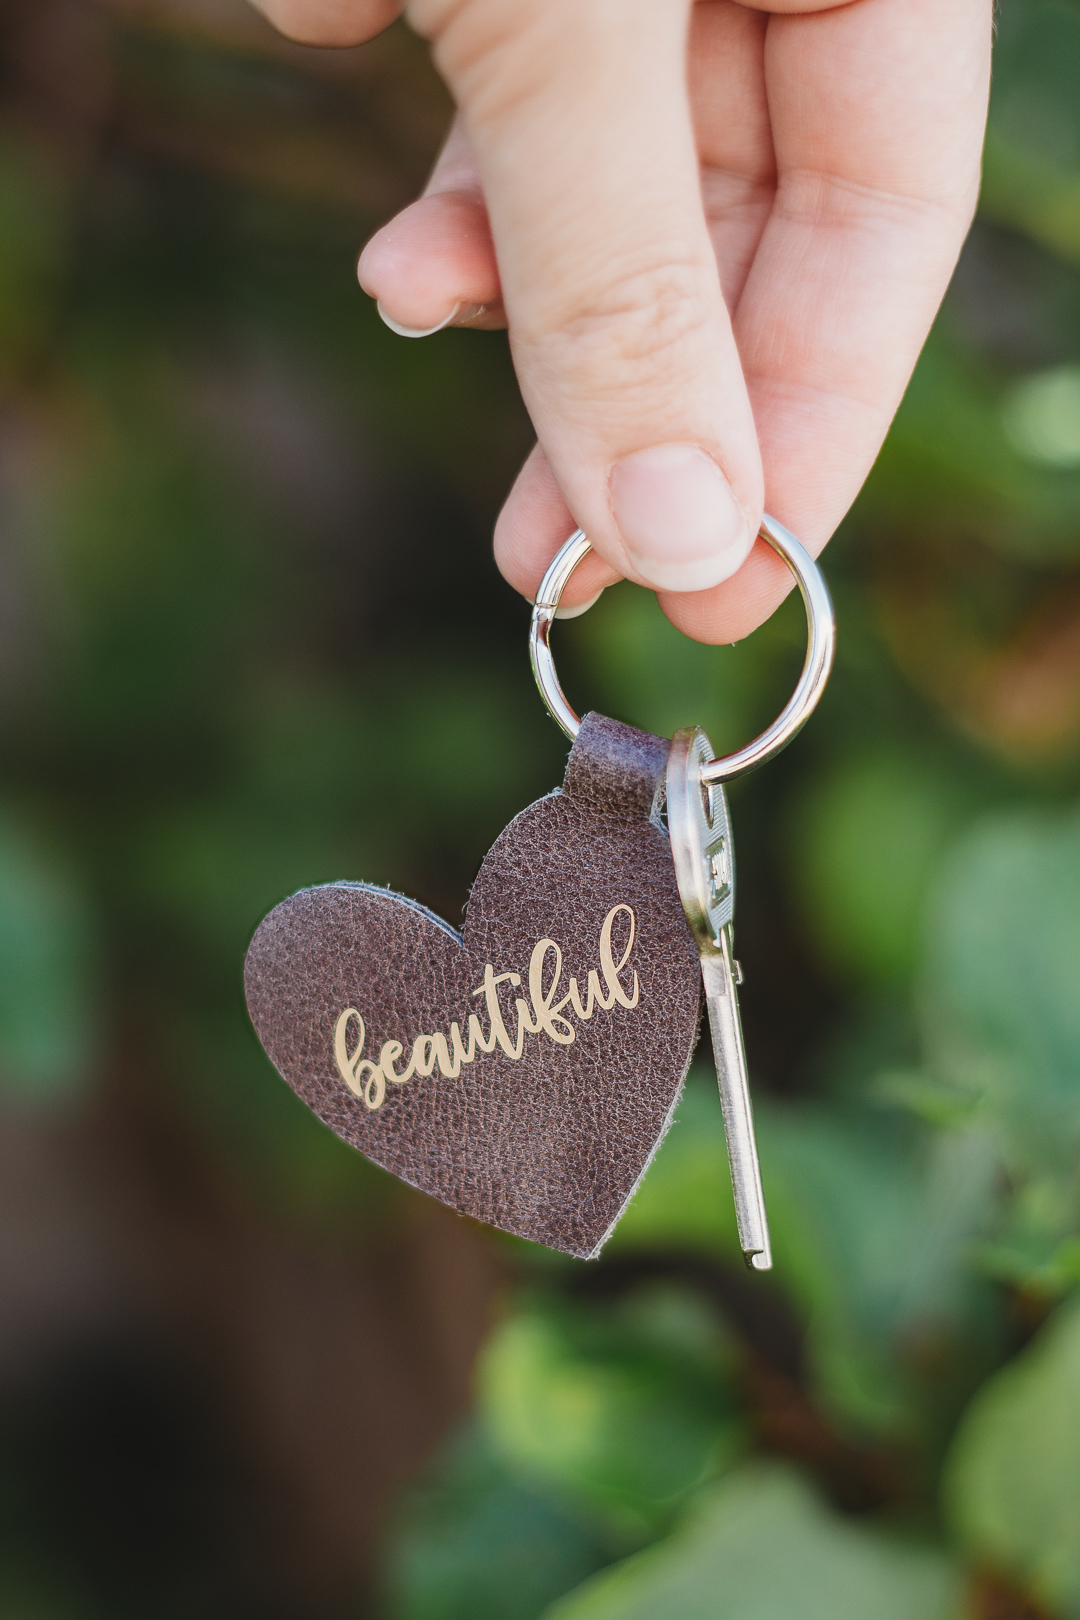 Leather Keyring made with the Cricut Maker - includes free SVG pattern